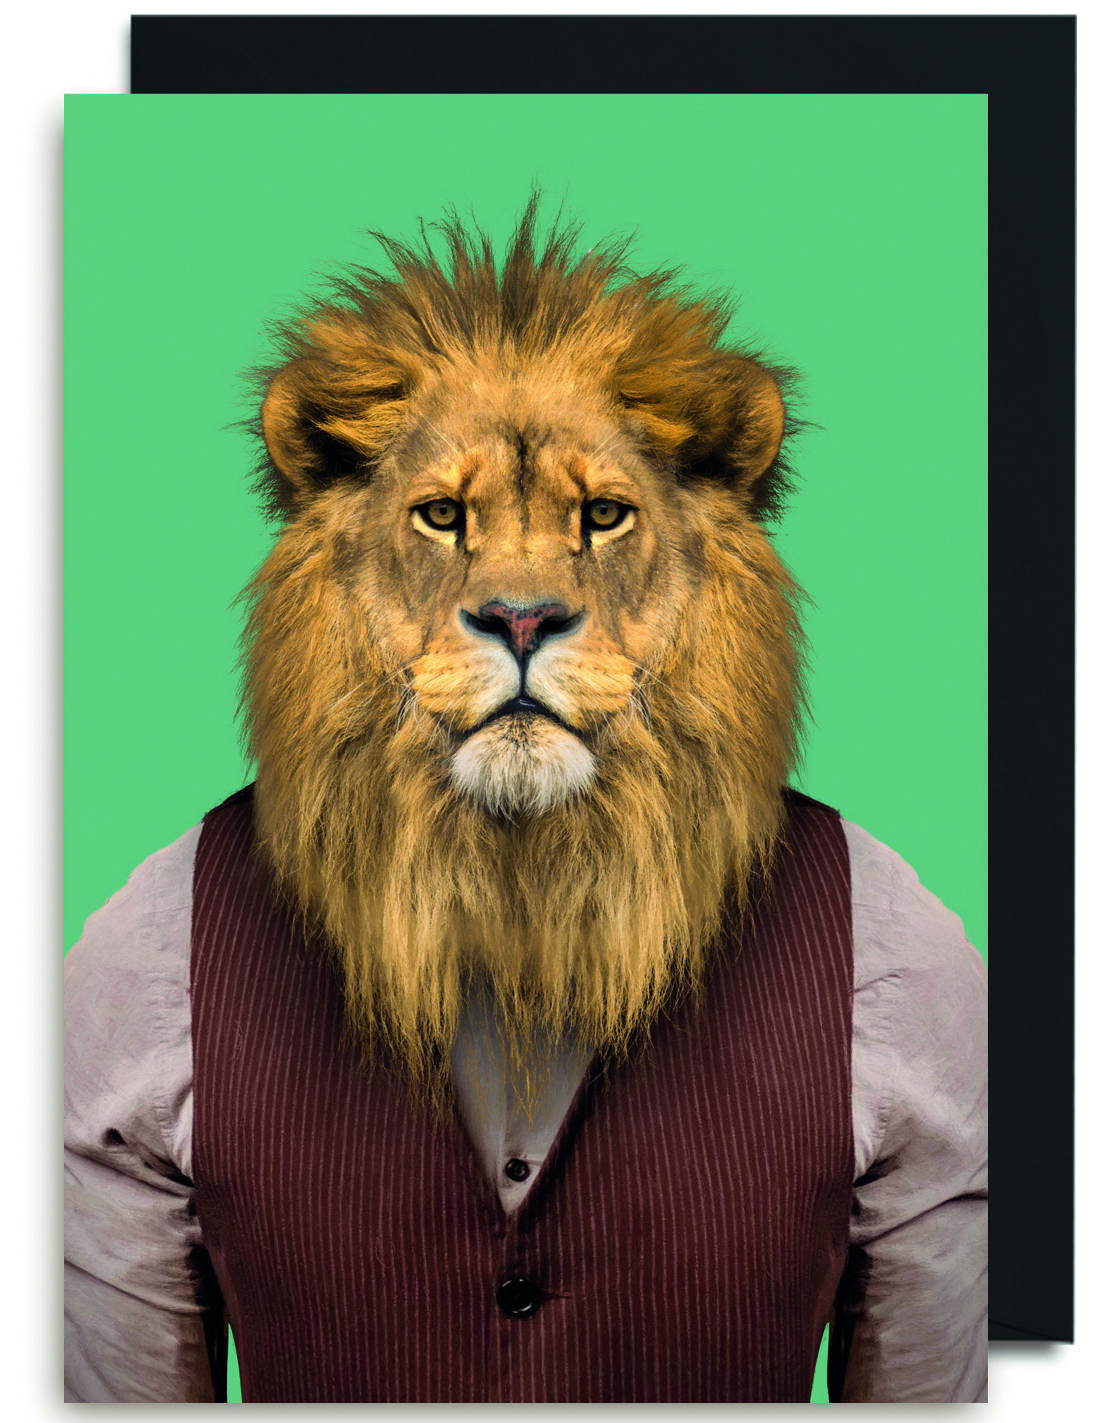 Above: A hipster lion card from Lagom.